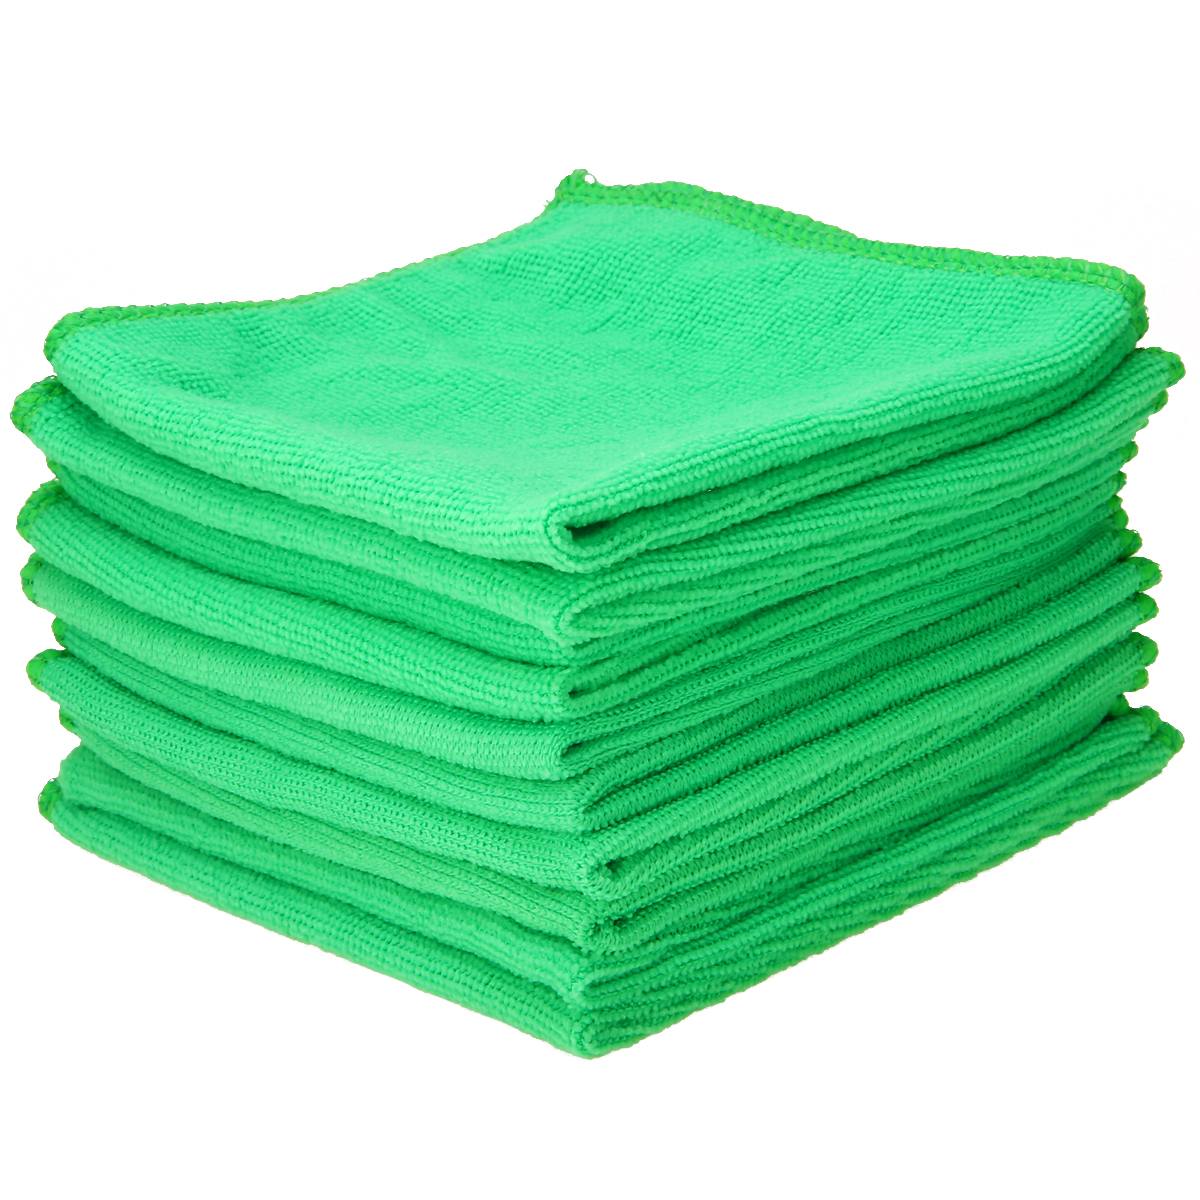 Image 4 - 10pcs/set 25 x 25cm Microfiber Car Wash Towel Soft Cleaning Auto Car Care Detailing Cloths Wash Towel-in Sponges, Cloths & Brushes from Automobiles & Motorcycles